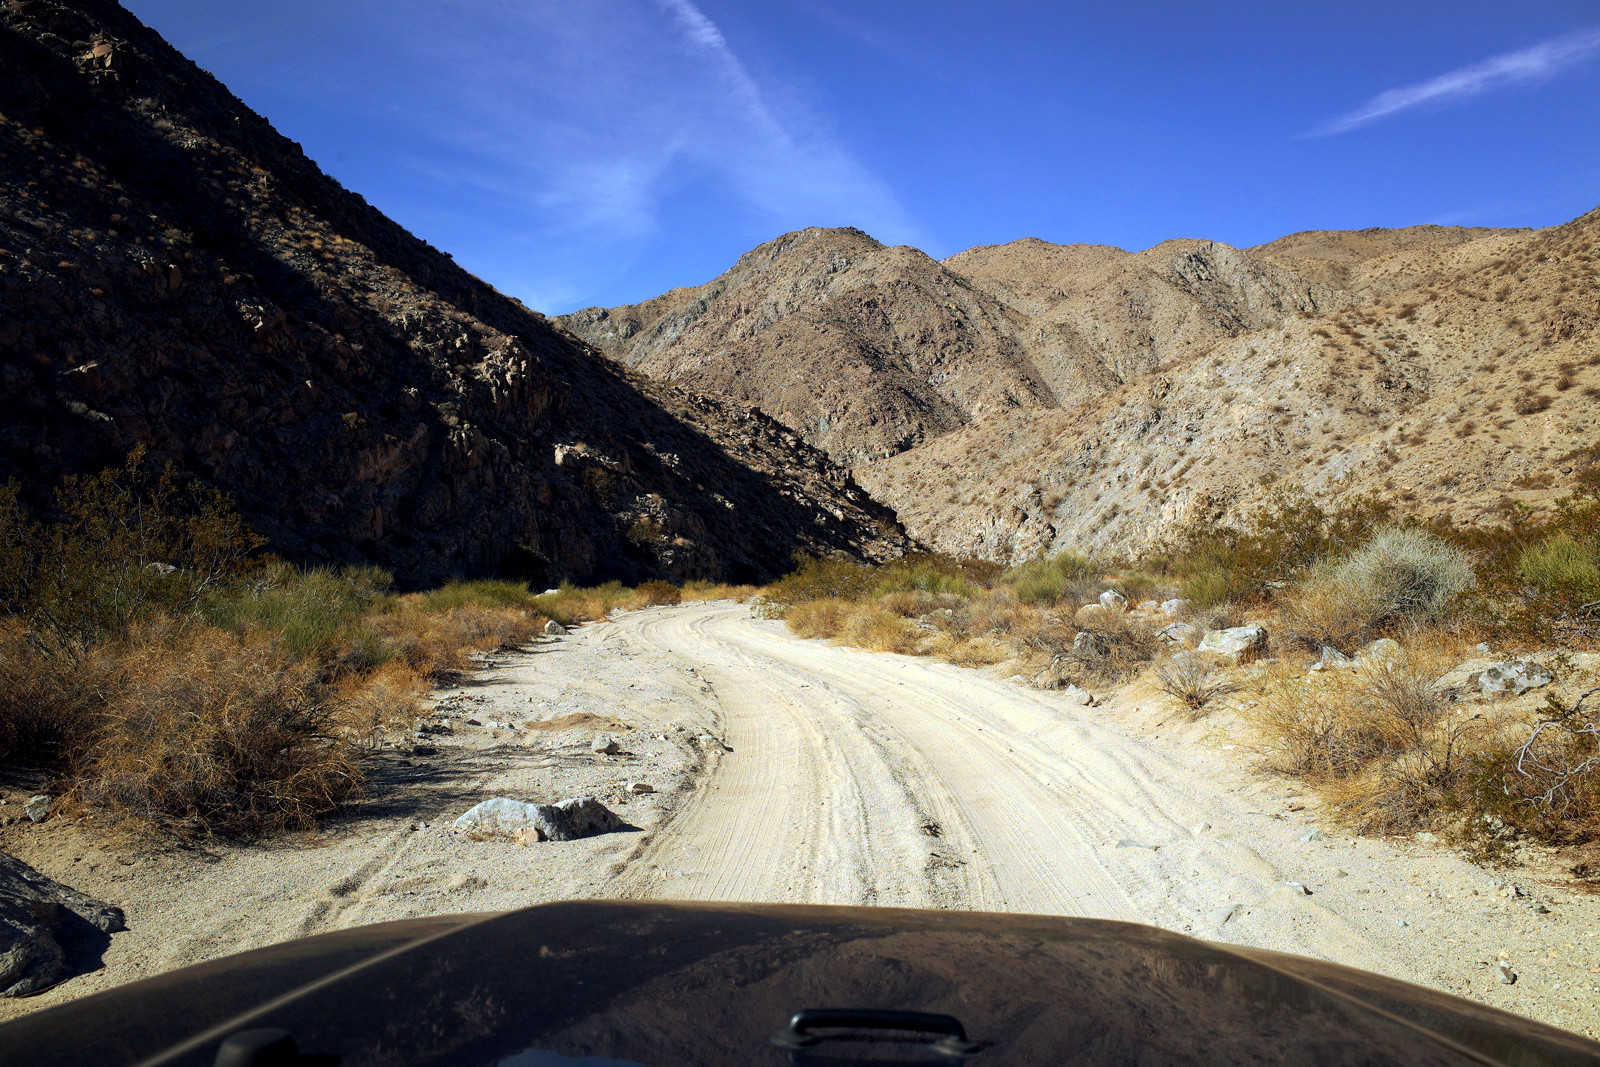 Jeep's eye view somewhere along Berdoo Canyon Road in Joshua Tree National Park